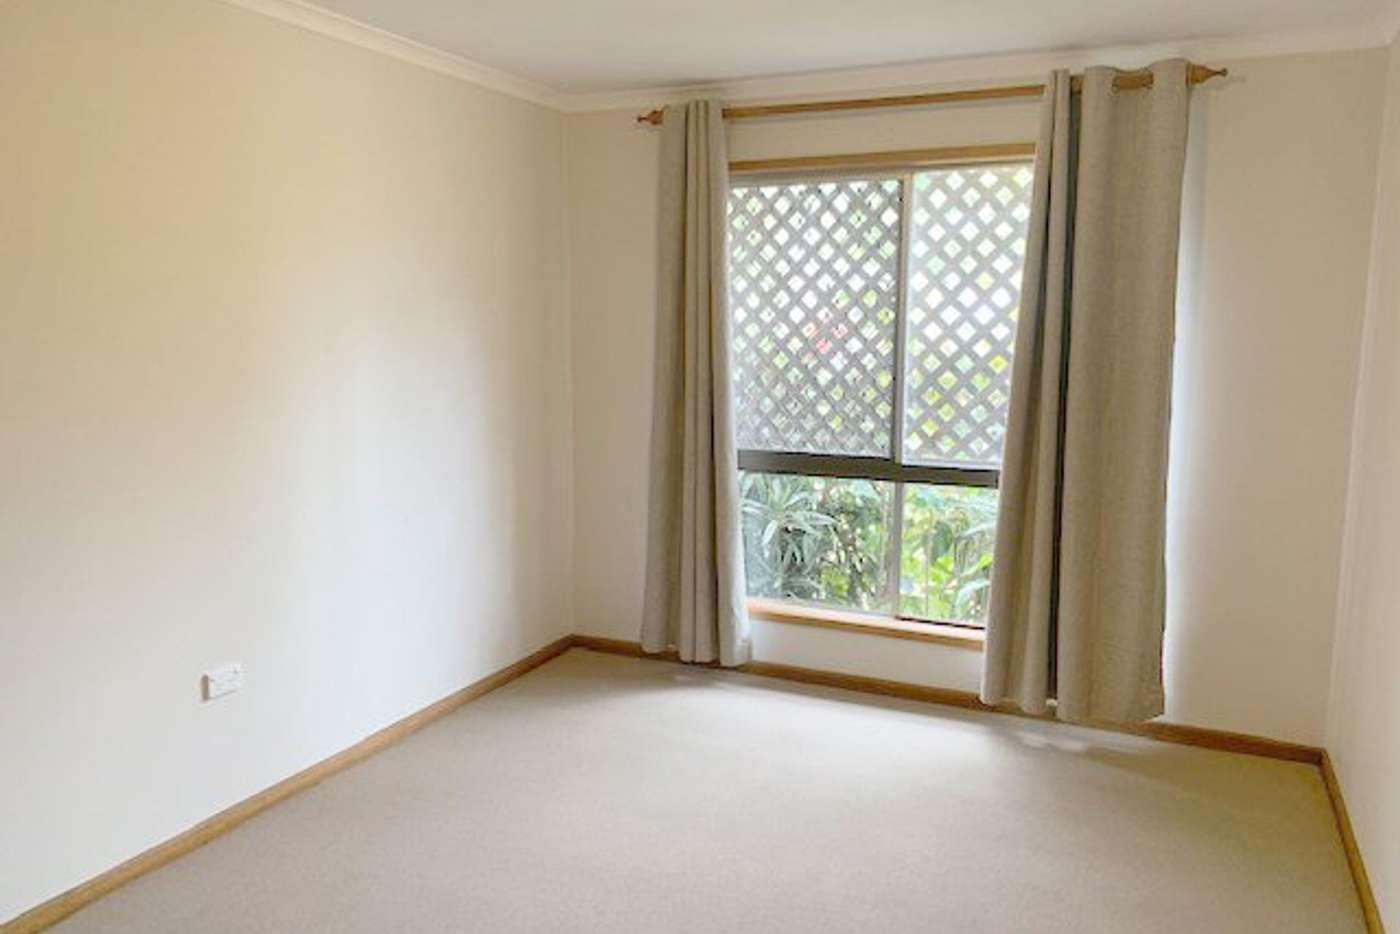 Seventh view of Homely house listing, 26 Zephyr Street, Scarness QLD 4655